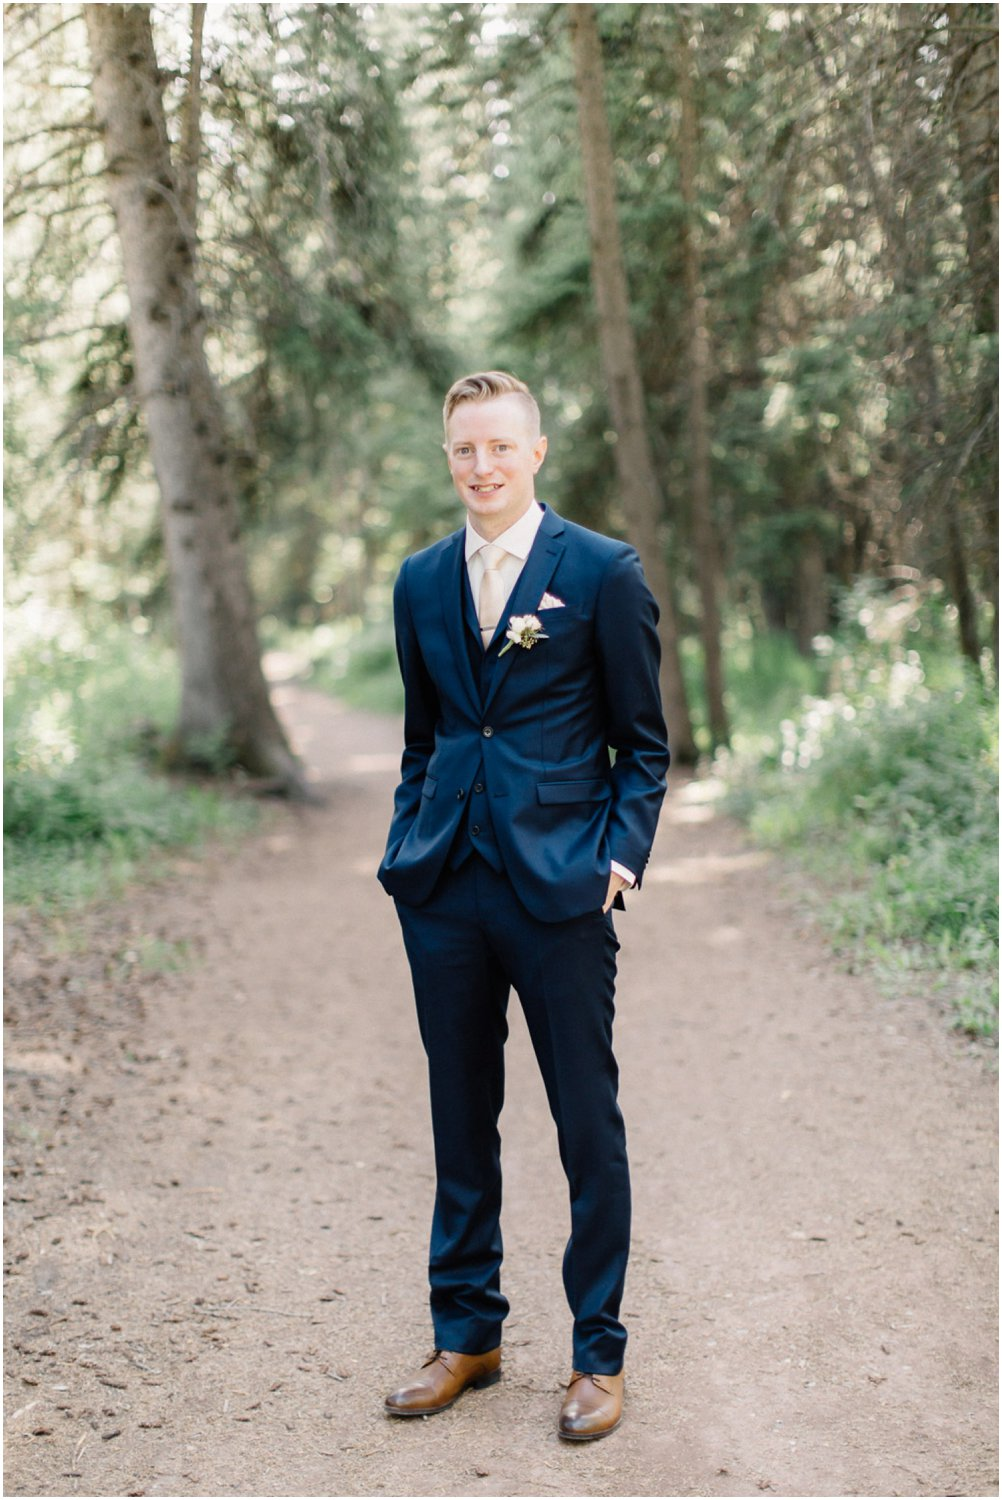 Handsome Groom - Calgary Wedding Photographer_4842